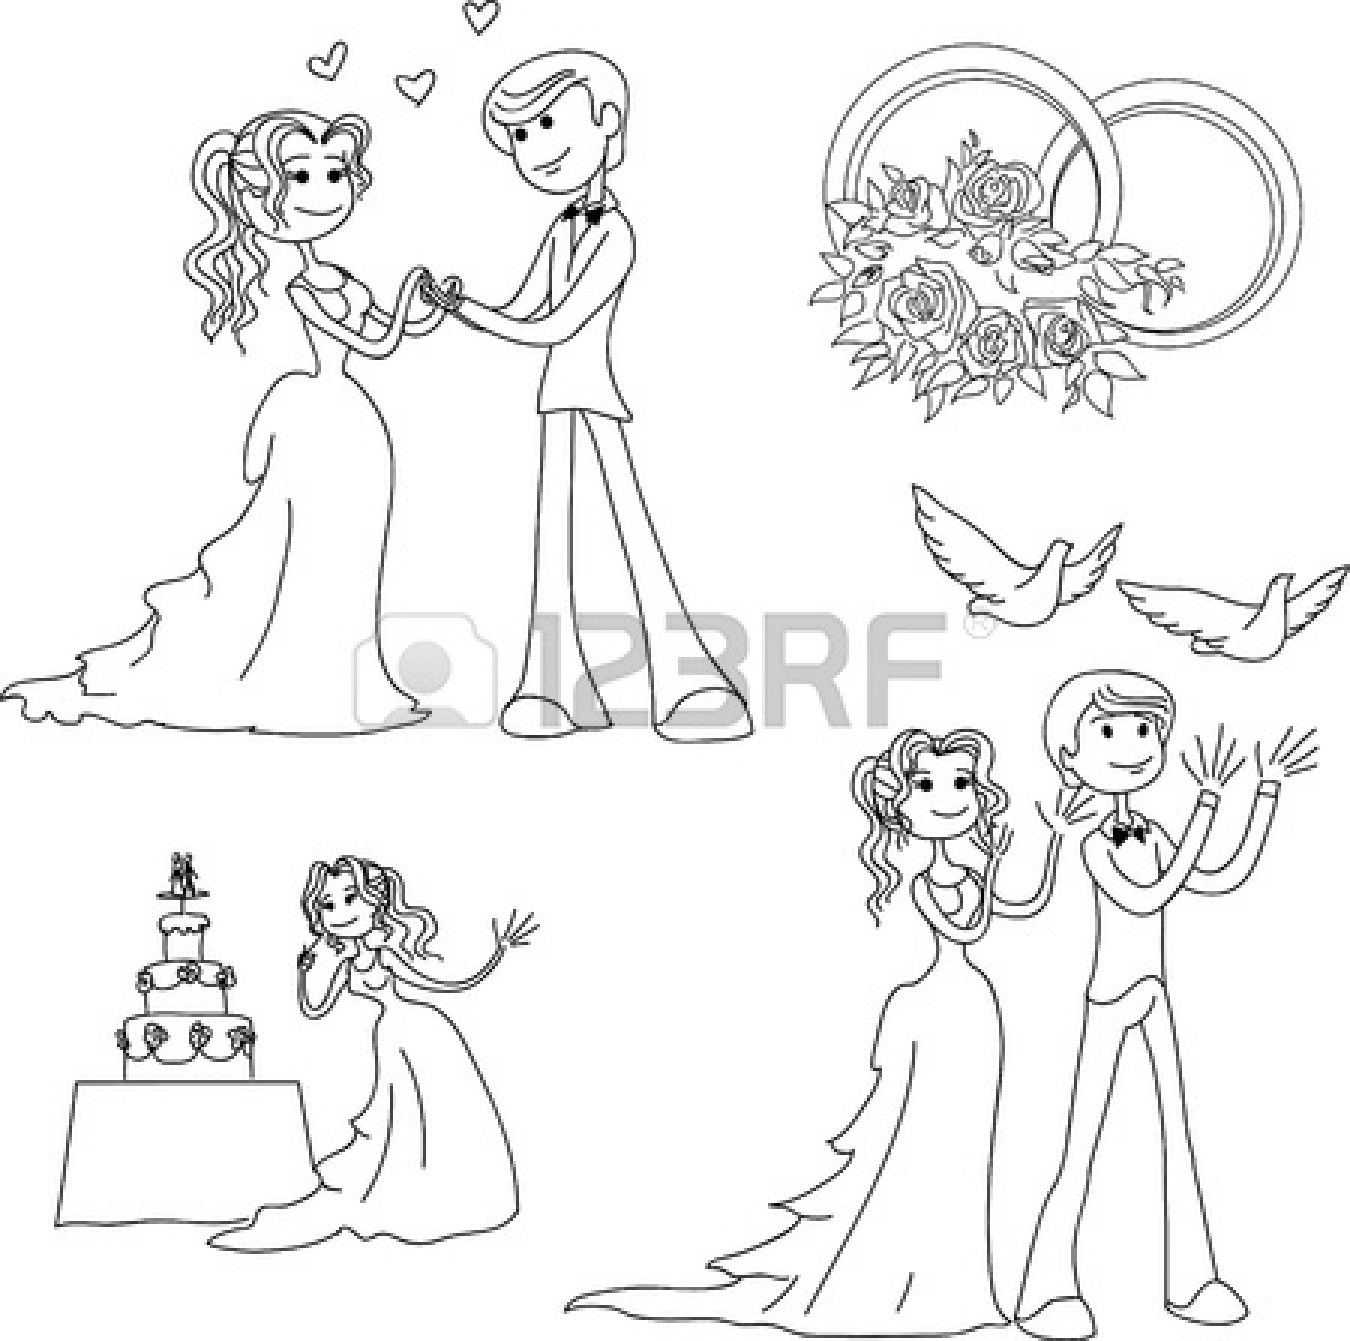 Coloring pages wedding theme - Lineart Wedding Theme In Cartoon Style Stock Vector 14355497 Wedding Coloring Pagesart